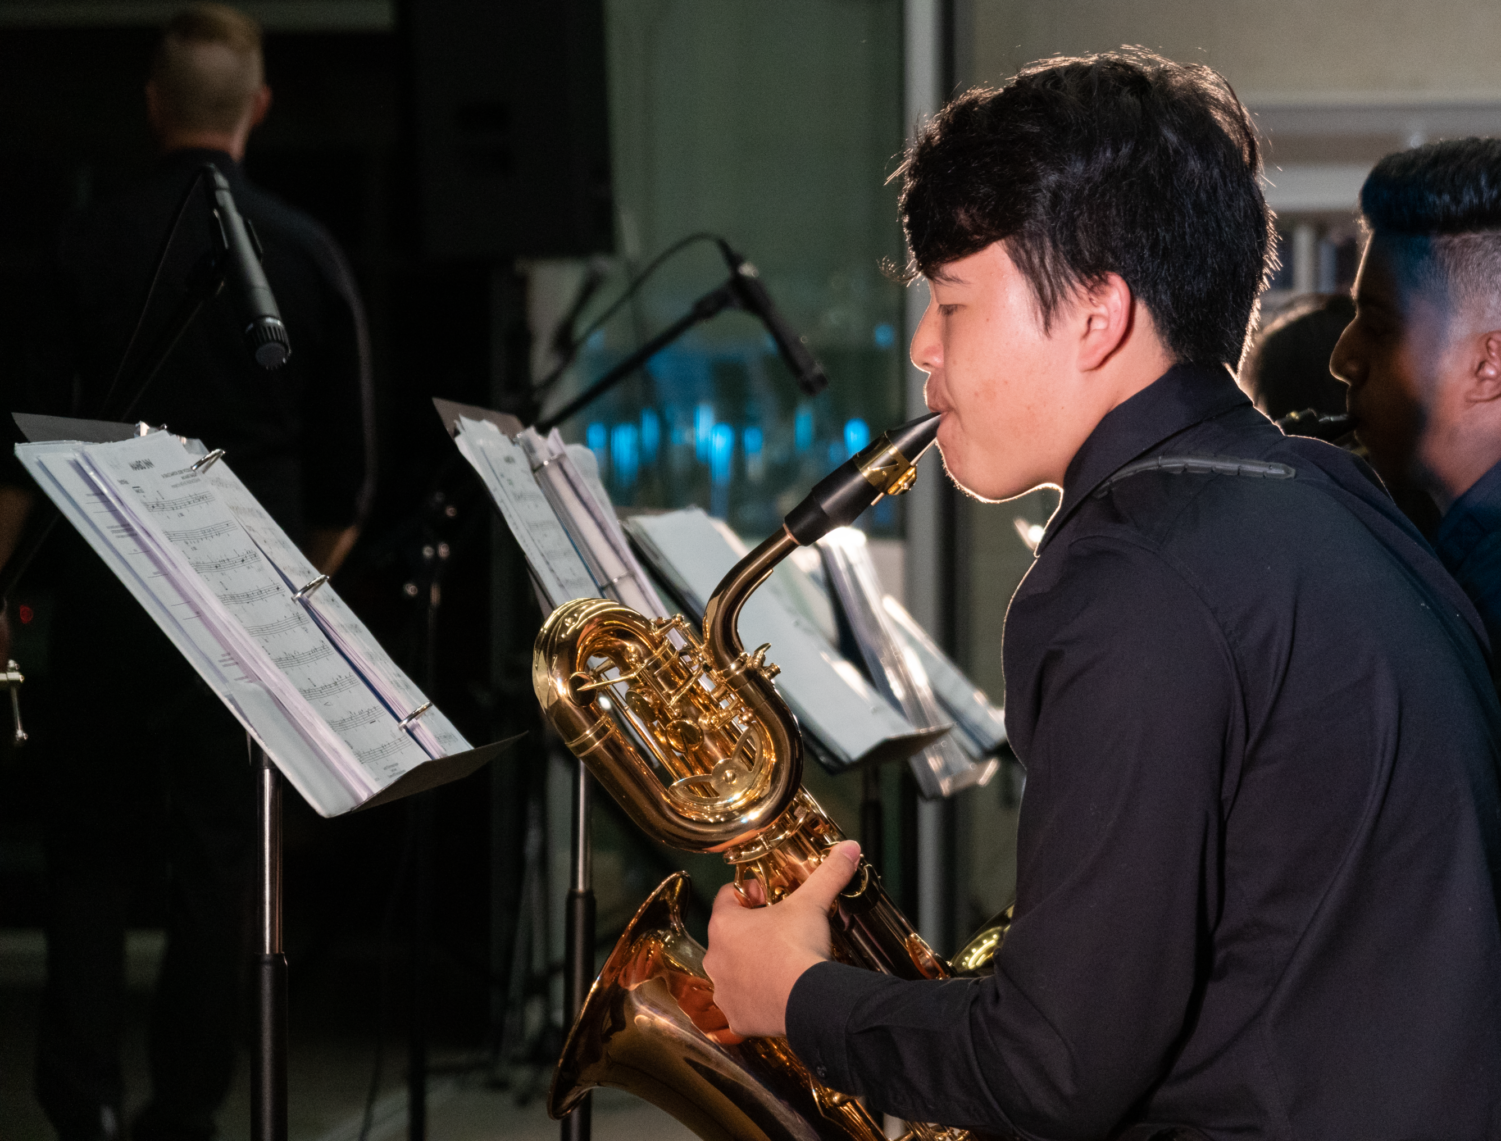 """As the finale of the concert, freshman Garrett Lee showcases his saxophone skills in musicality and improvisation with the jazz classic """"Mambo Inn,"""" a song highlighting two unique instruments: timbales and congas."""